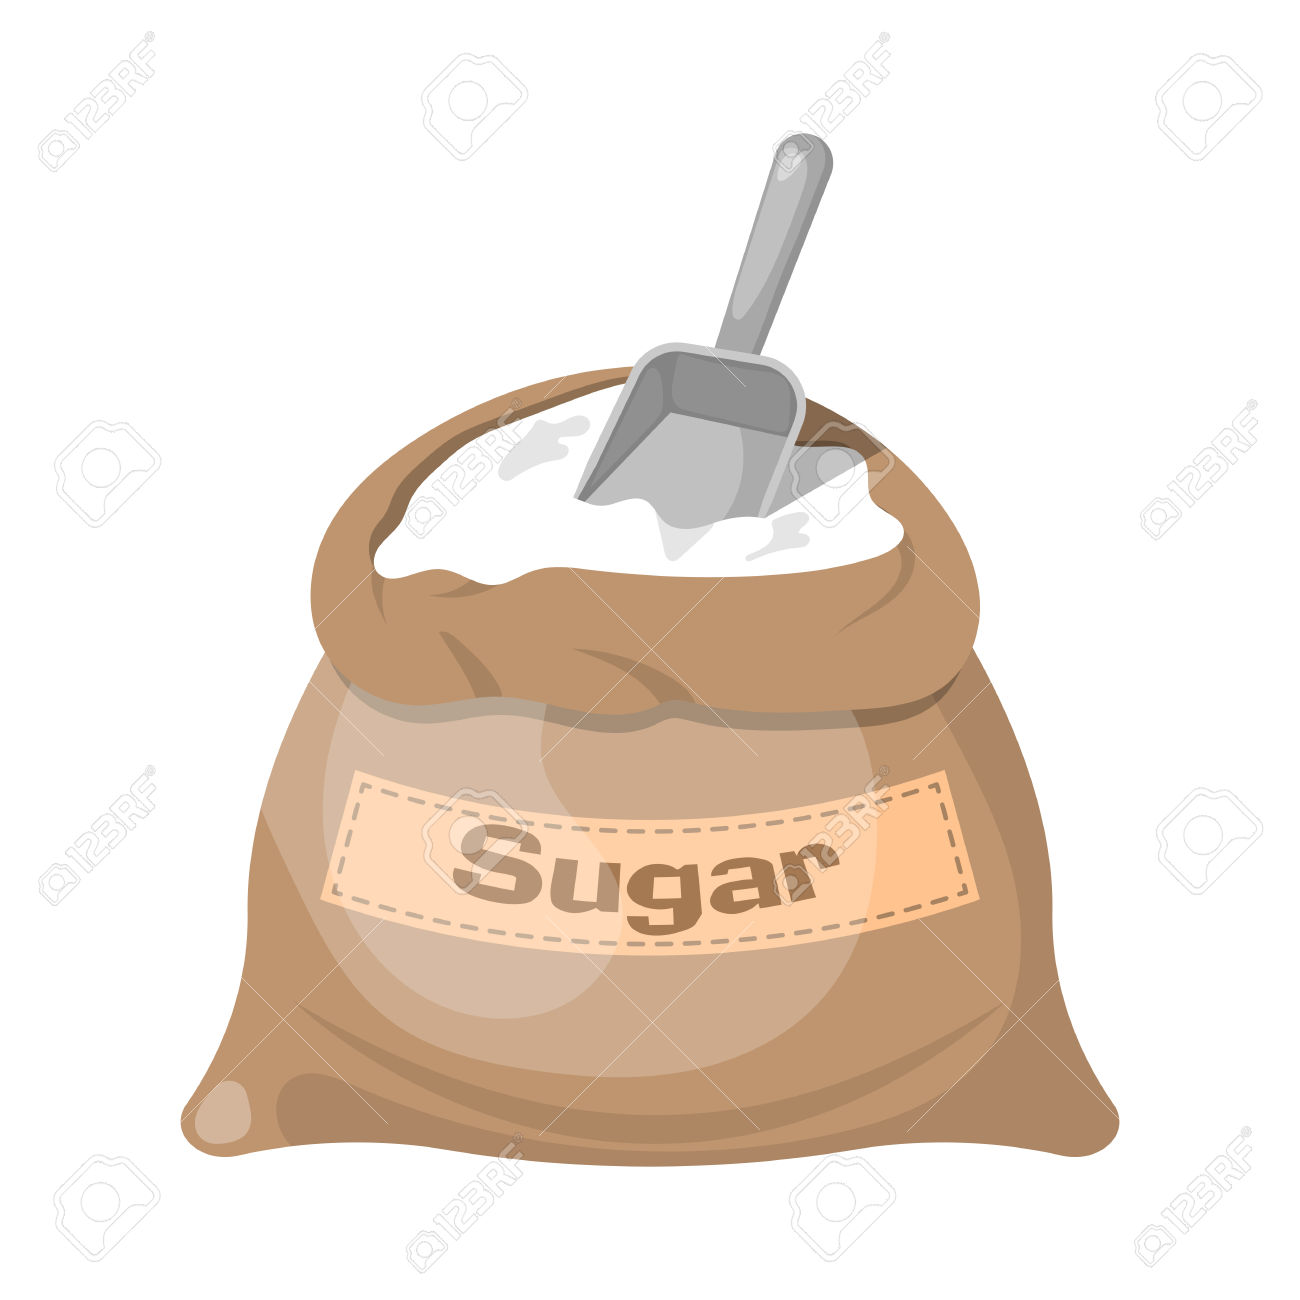 1300x1300 Sugar Clipart Grain Bag Free Collection Download And Share Sugar